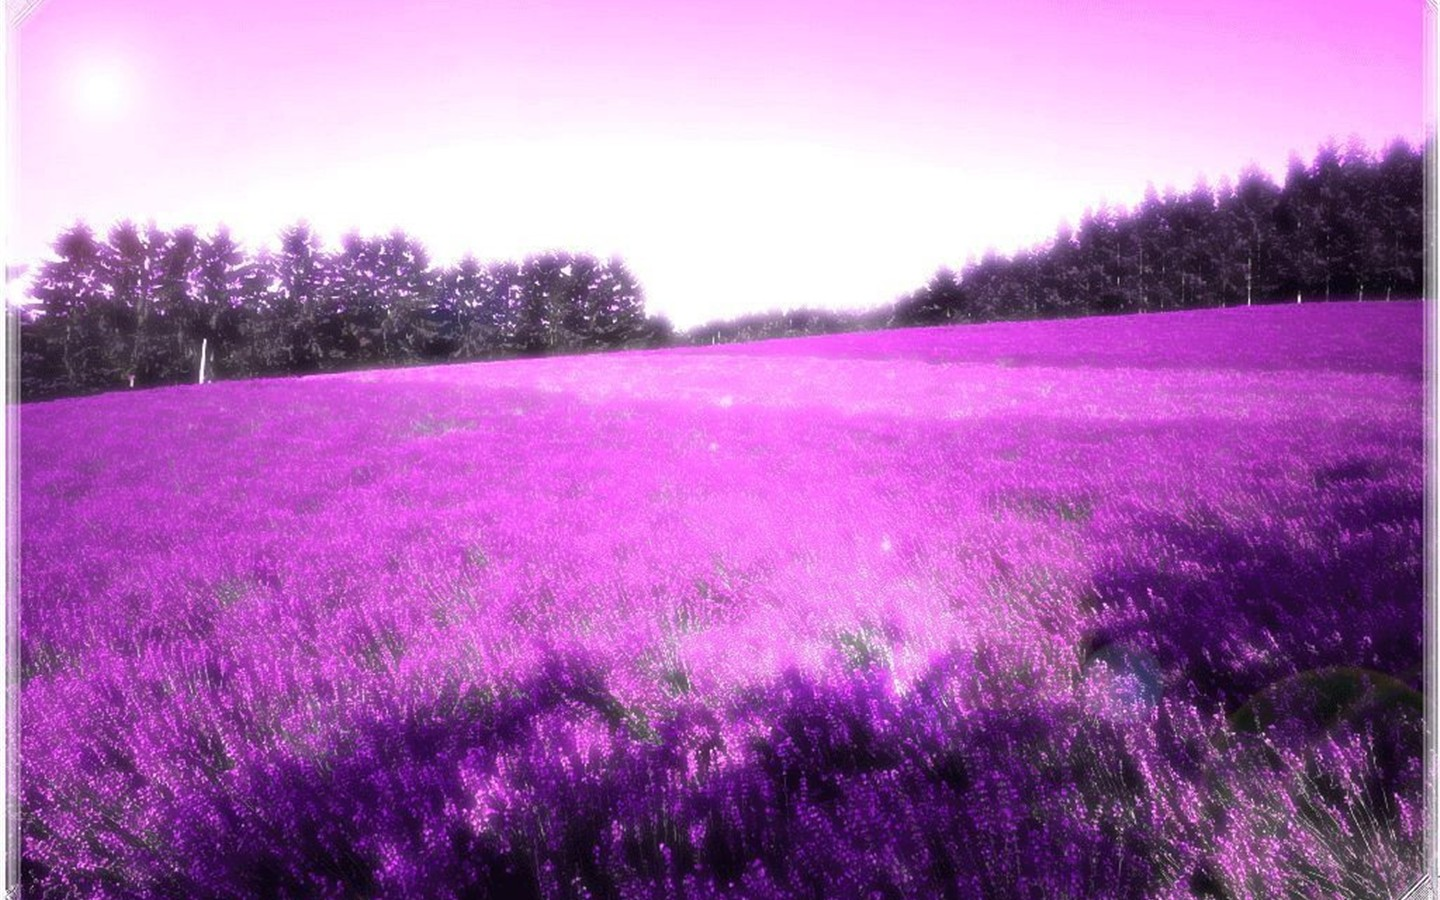 Field of Purple Flowers the Sky is Even Painted Purple Easy to Apply 1440x900